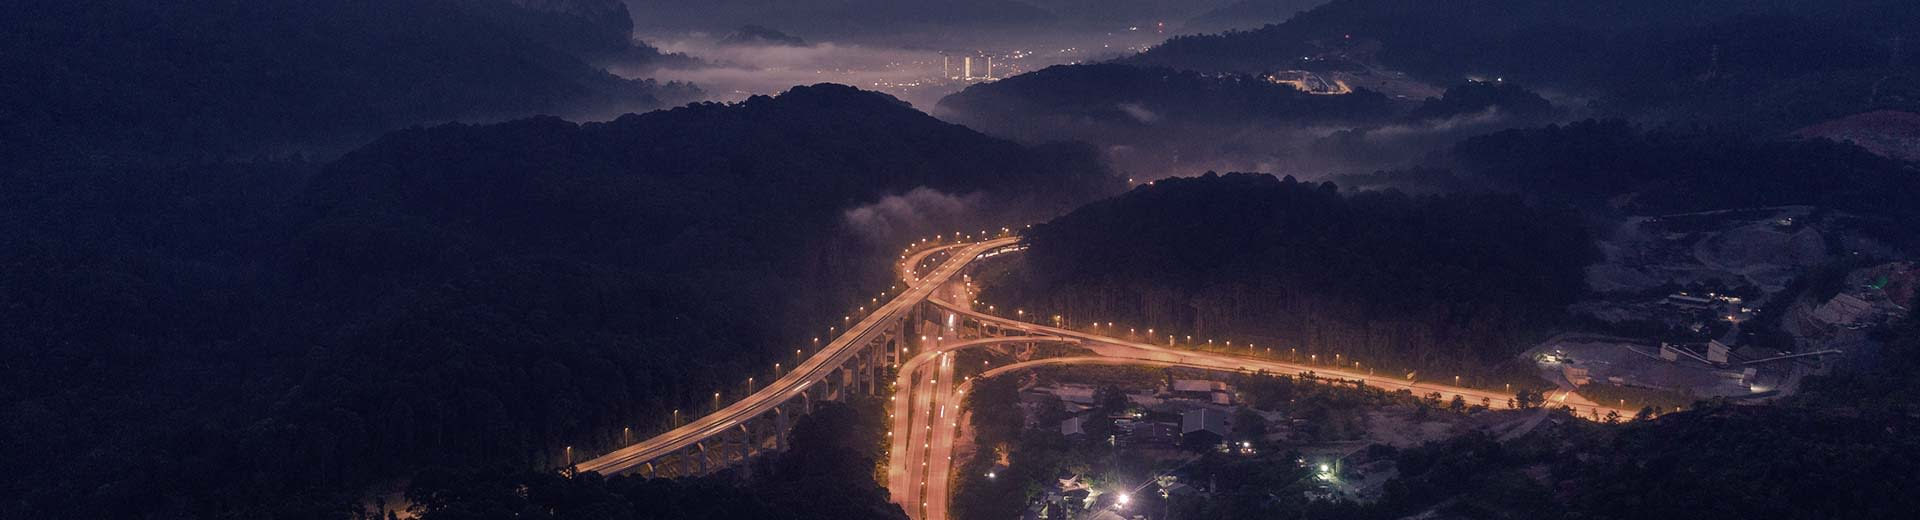 Dark hills suround a brightly lit highway, with the lights of Rawang in the distance